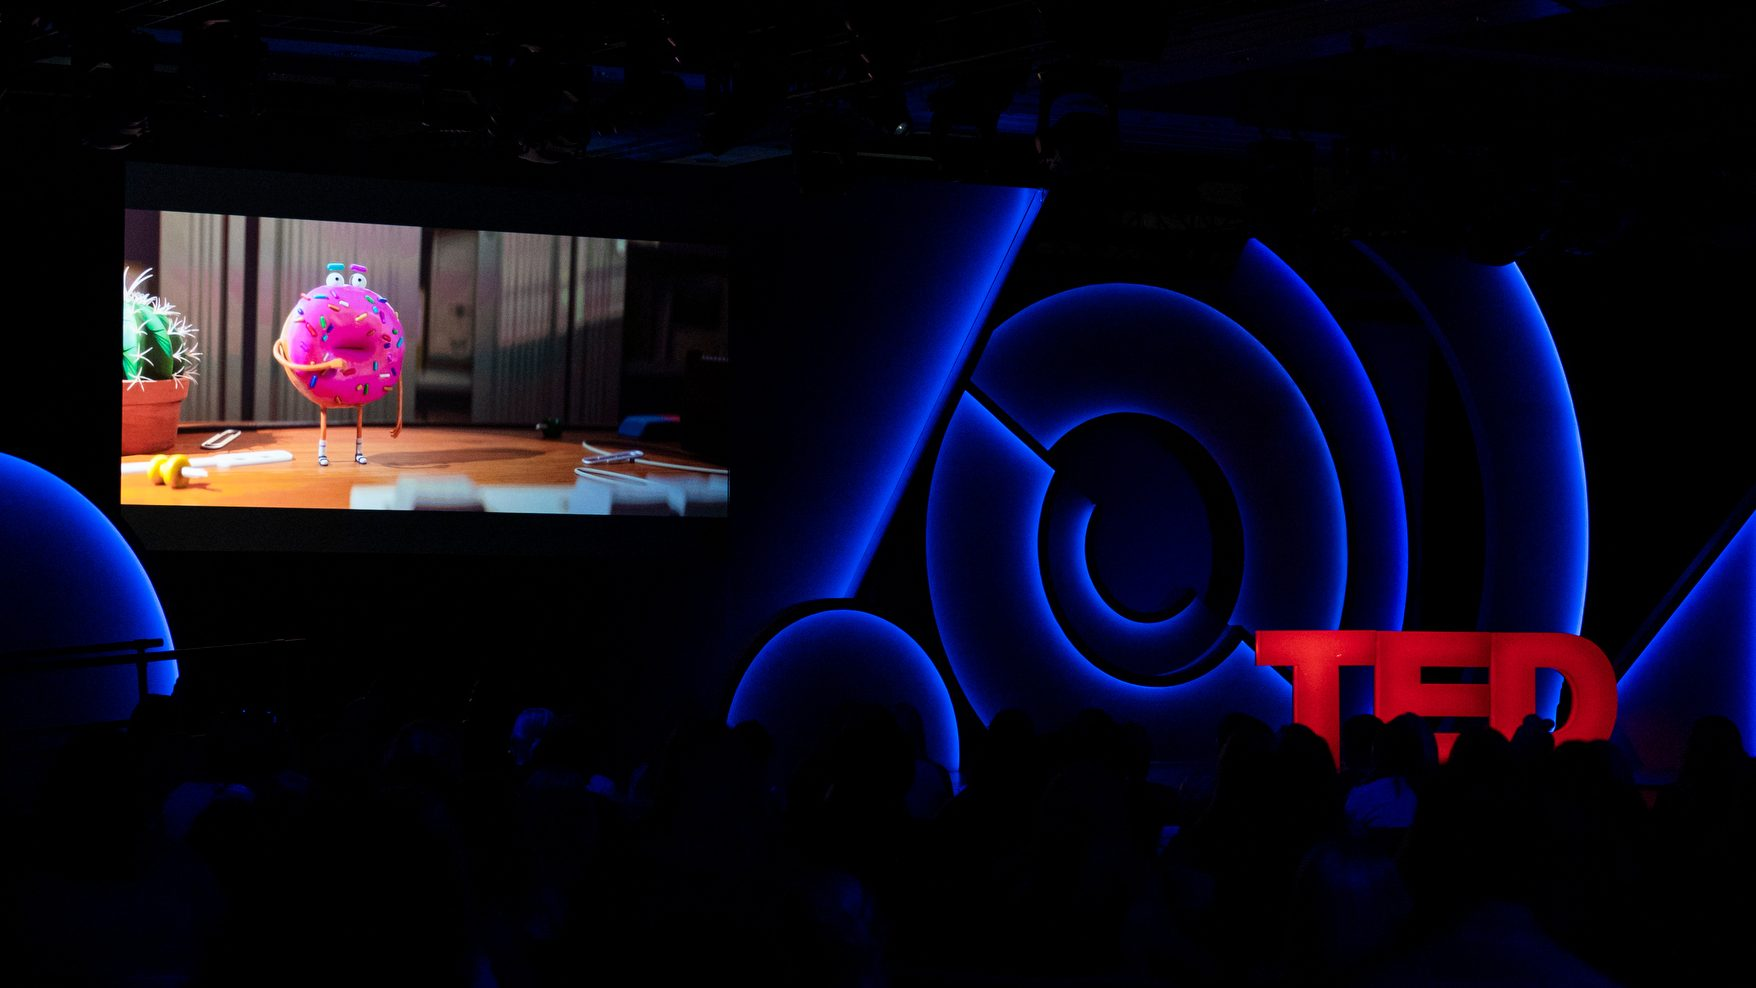 Lead image: Inside the auditorium of TED Women conference 2019